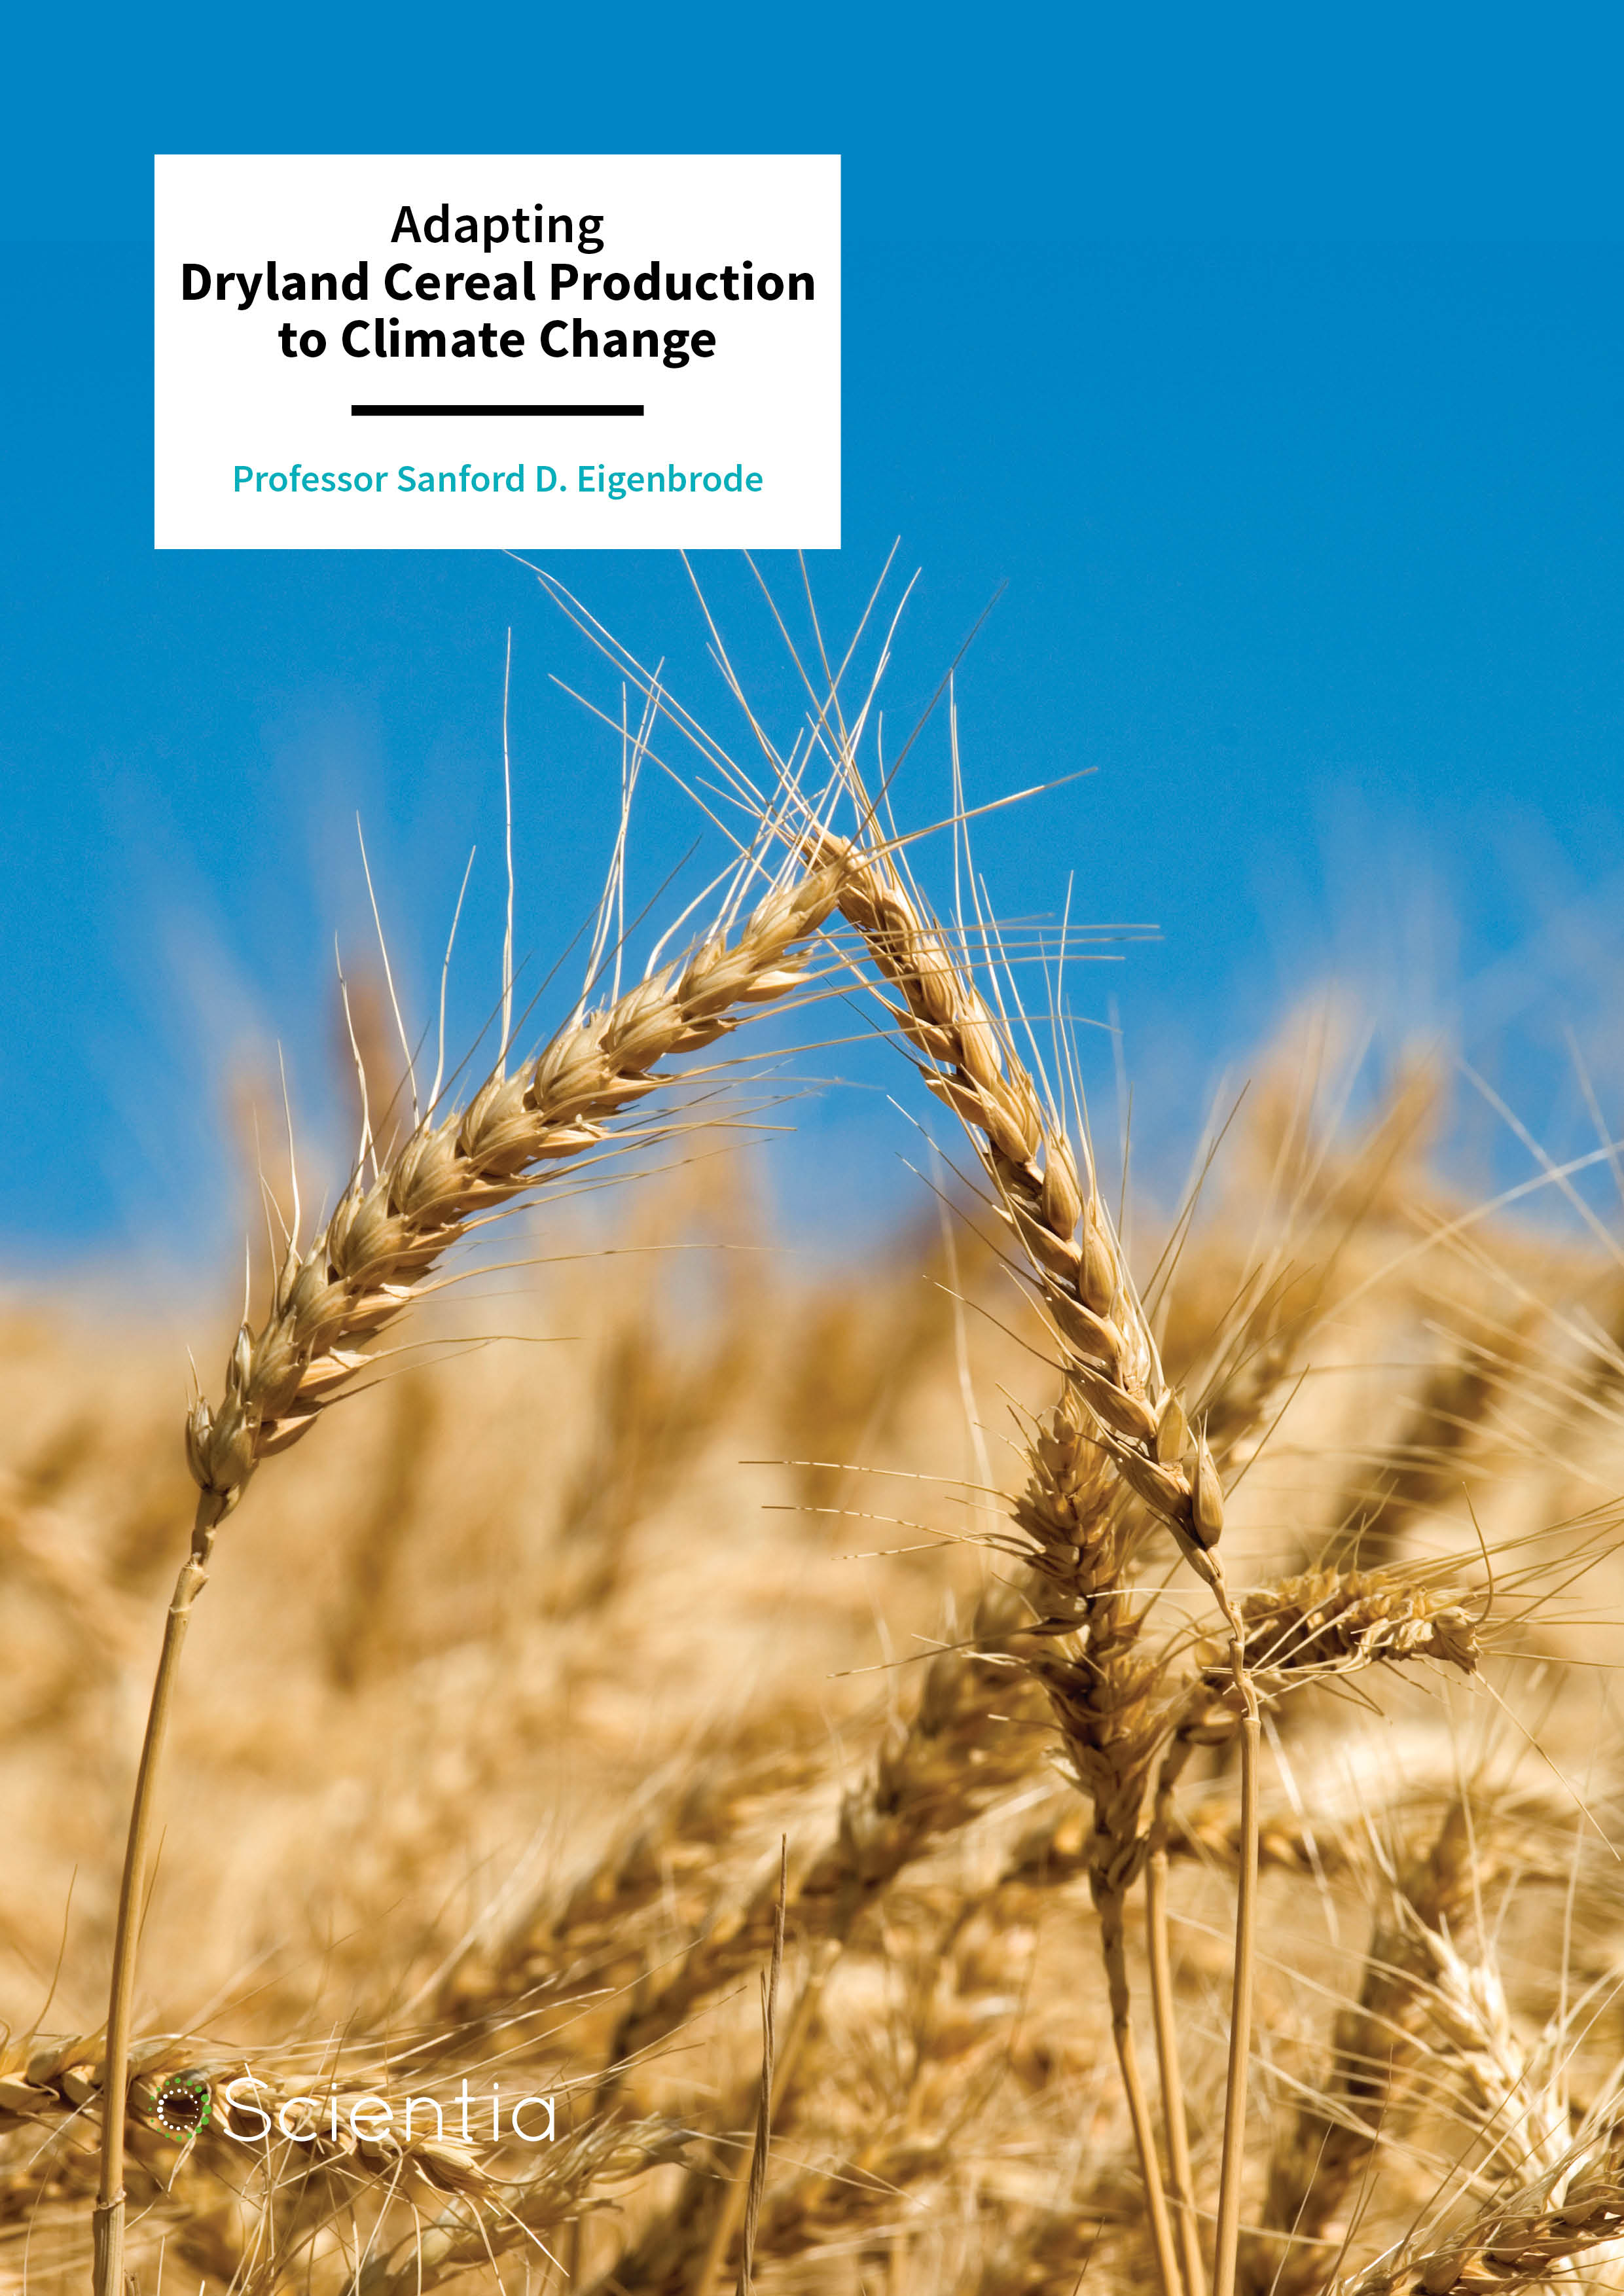 Professor Sanford Eigenbrode – Adapting Dryland Cereal Production to Climate Change